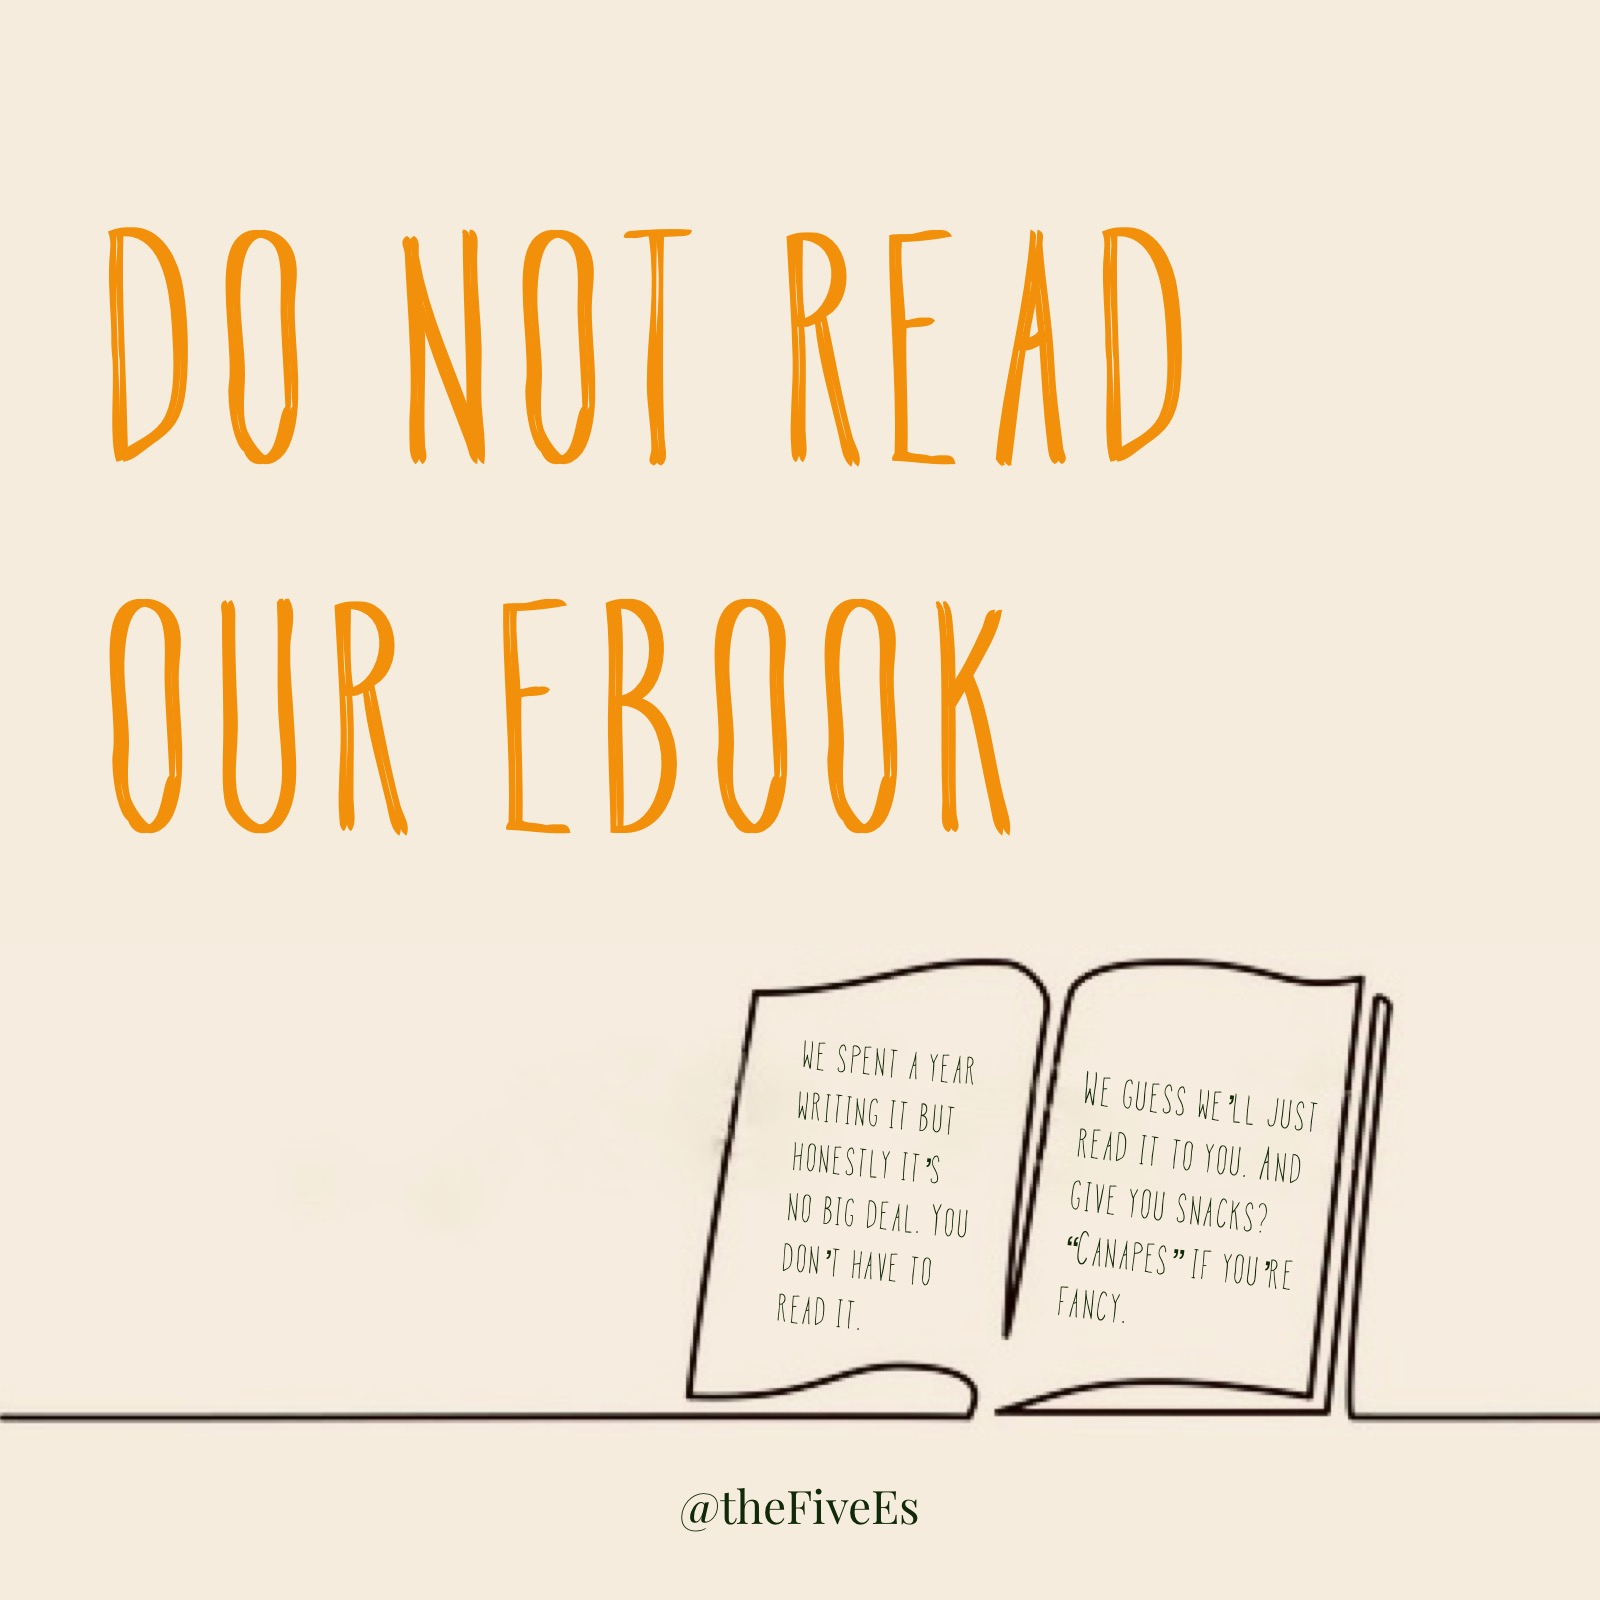 Do not read our eBook